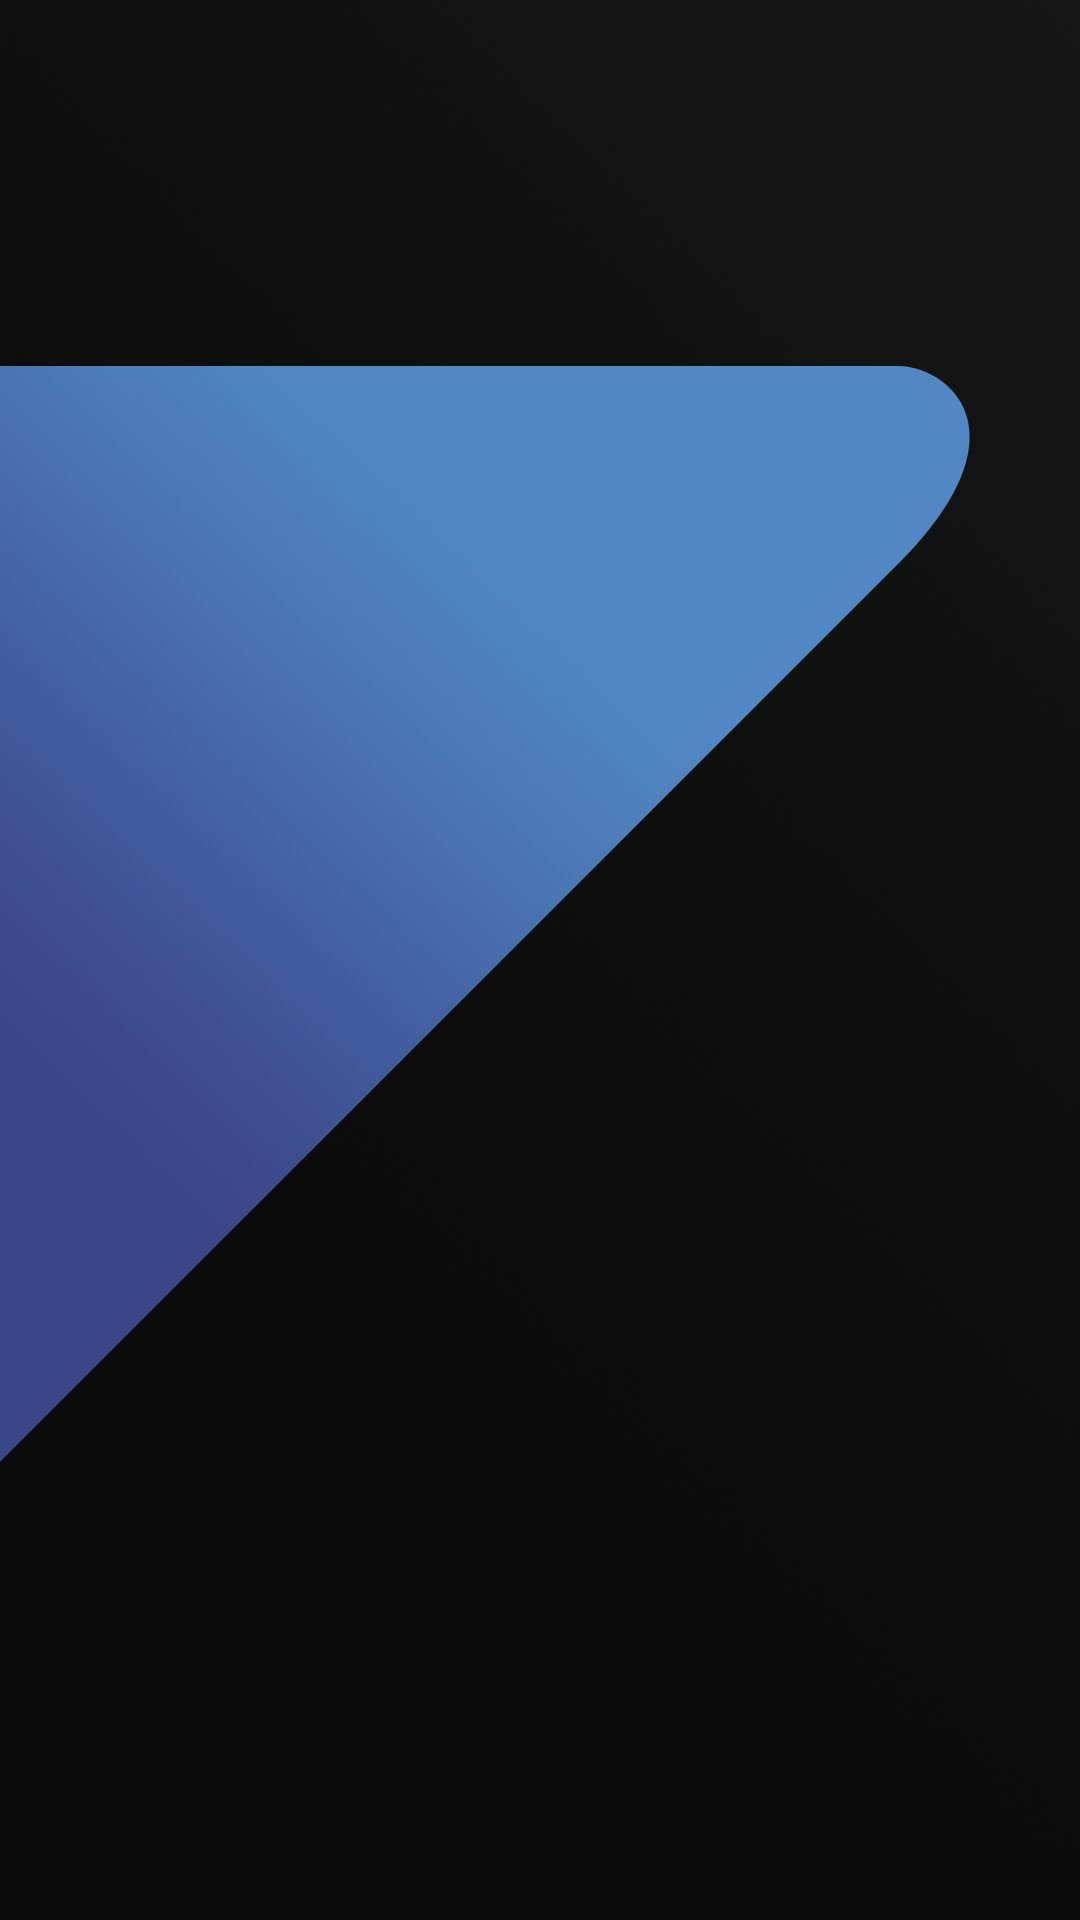 46+] Samsung Galaxy S7 Wallpapers on